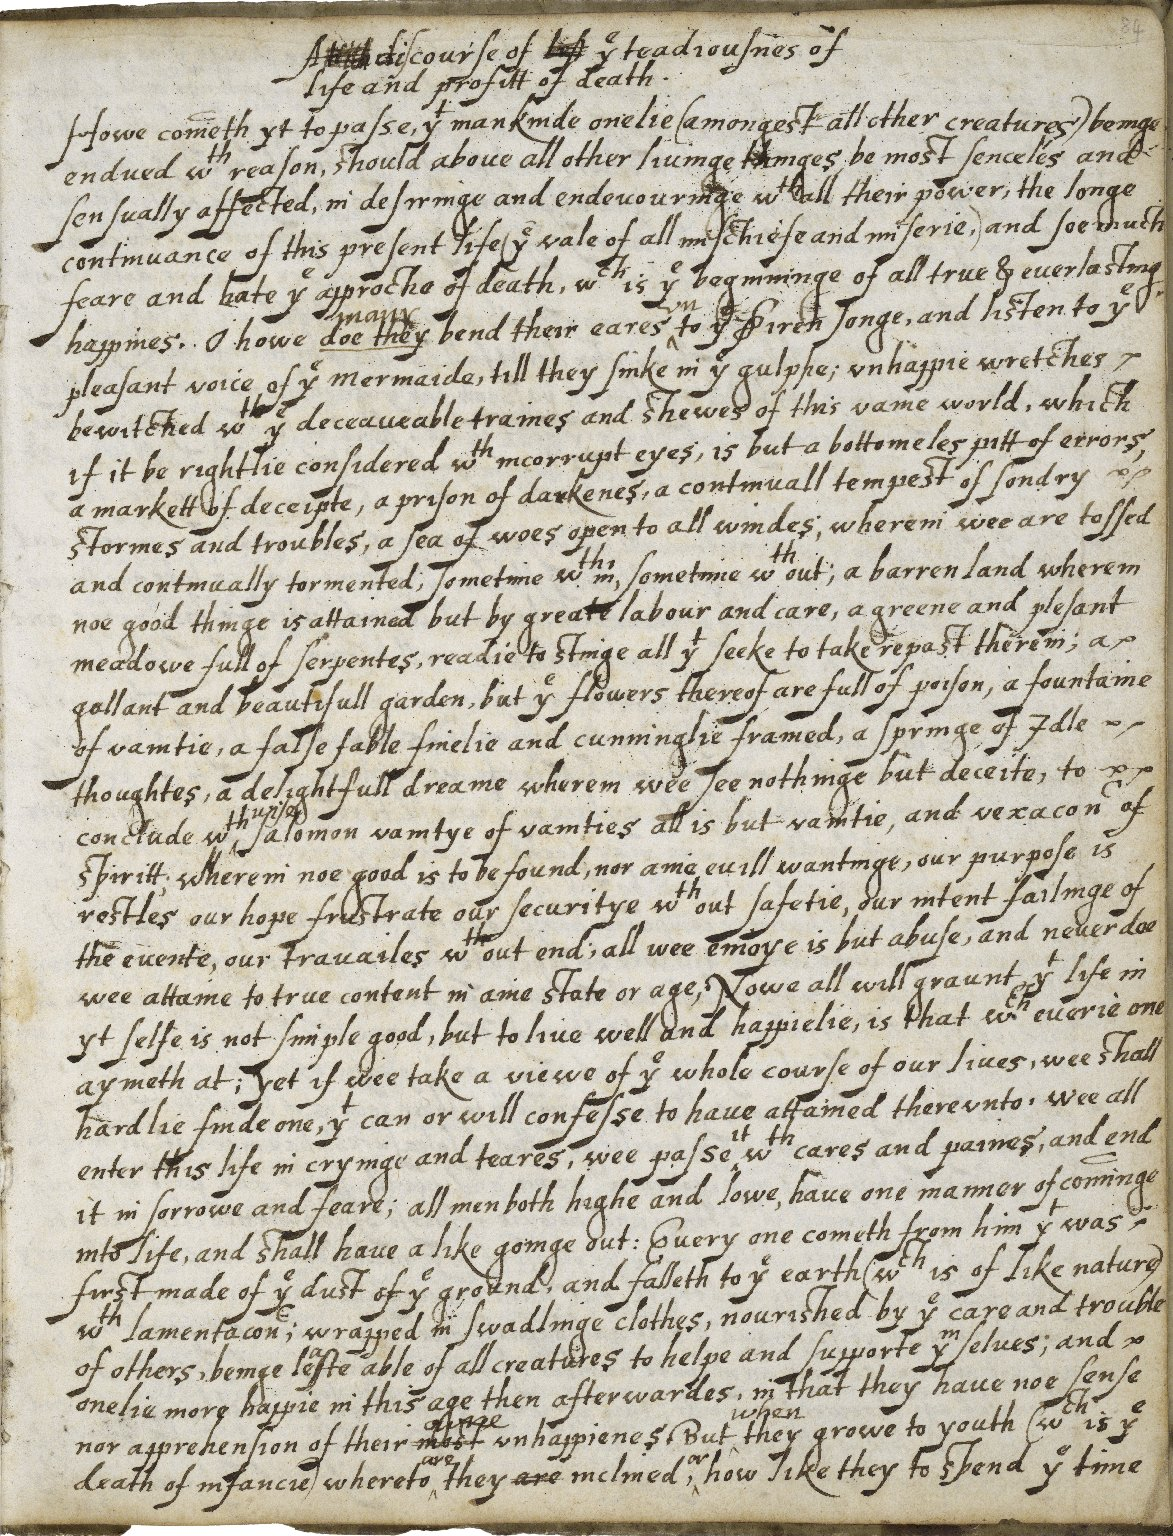 Instructions for my children, or any other Christian, directing to the performance of our duties, towardes God and Man, drawne out of the holy scripture [manuscript], 1606-ca. 1750.